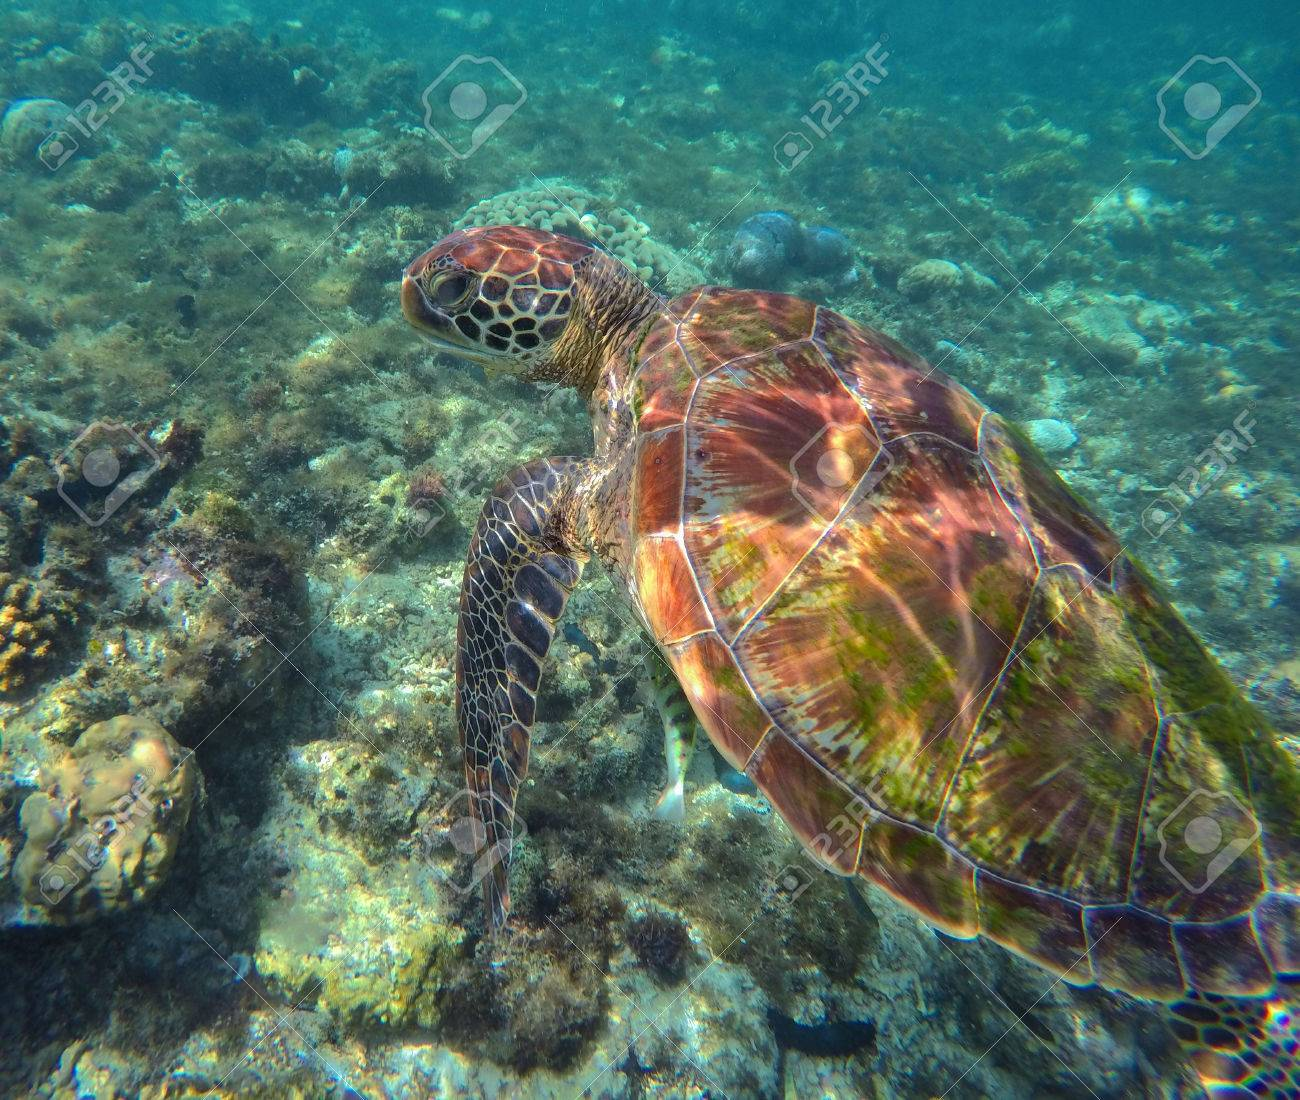 Sea Turtle In Blue Water Green Sea Turtle Diving In Coral Reef